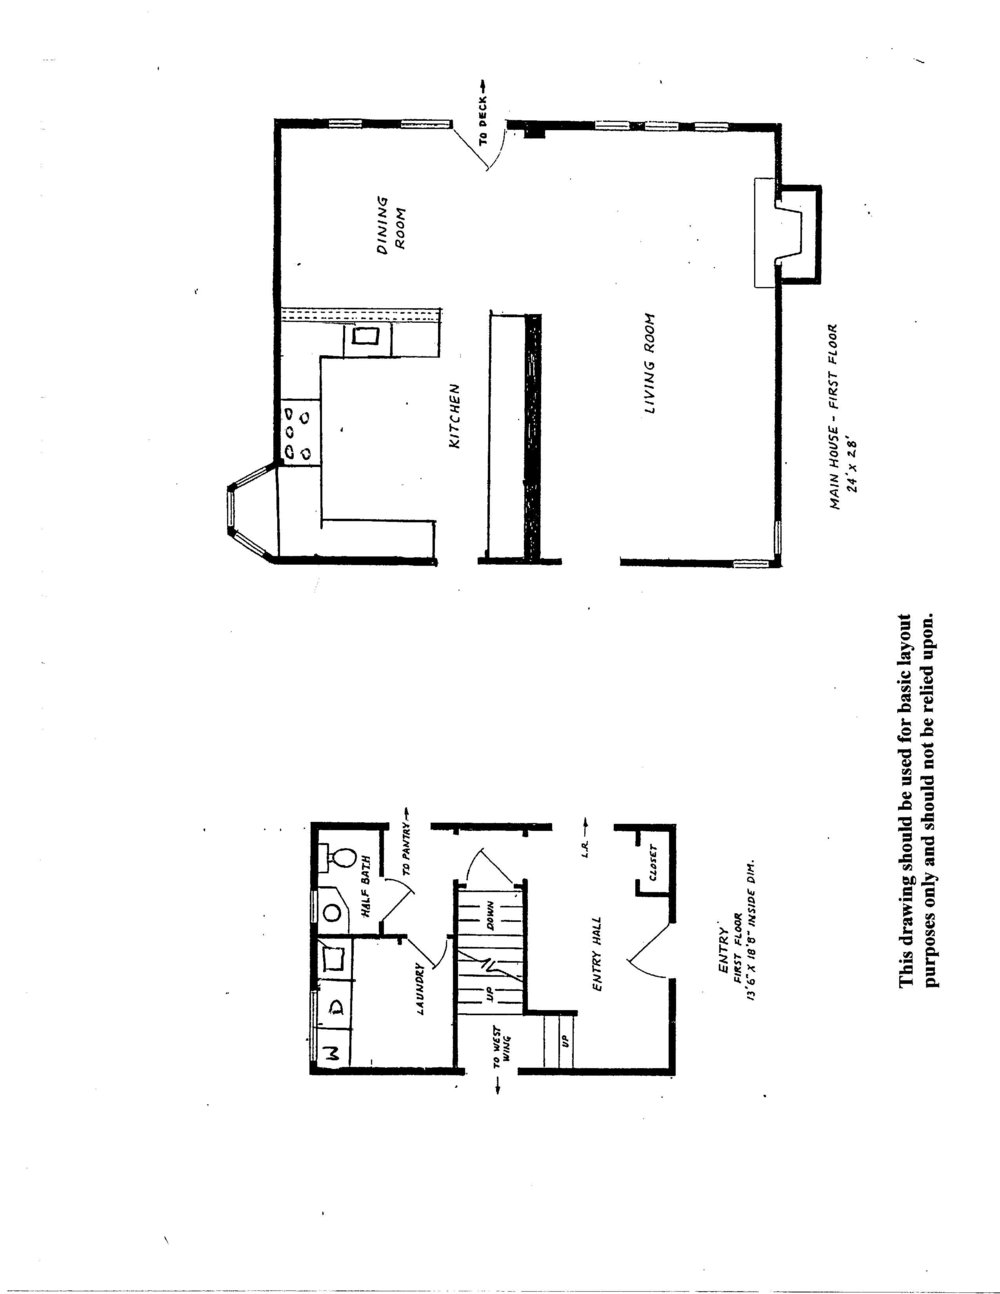 1453 S Bay View Trail, Suttons Bay – Marketing Packet by Oltersdorf Realty LLC, Leelanau County Real Estate (15).jpg